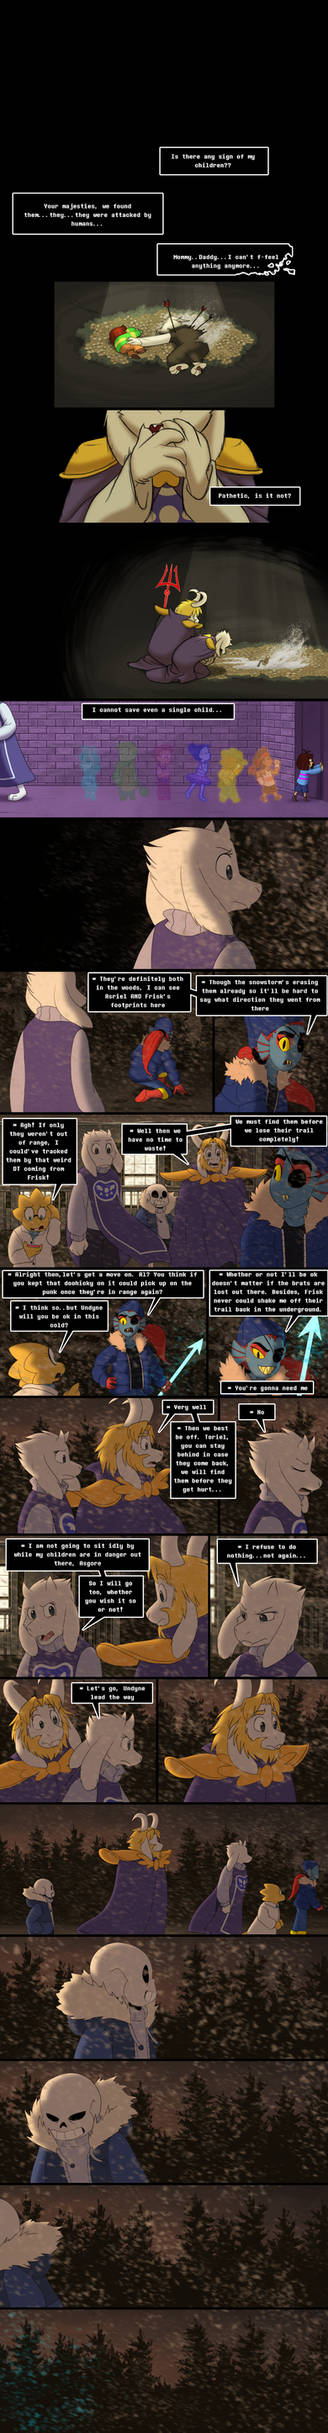 Endertale - Page 41 by TC-96